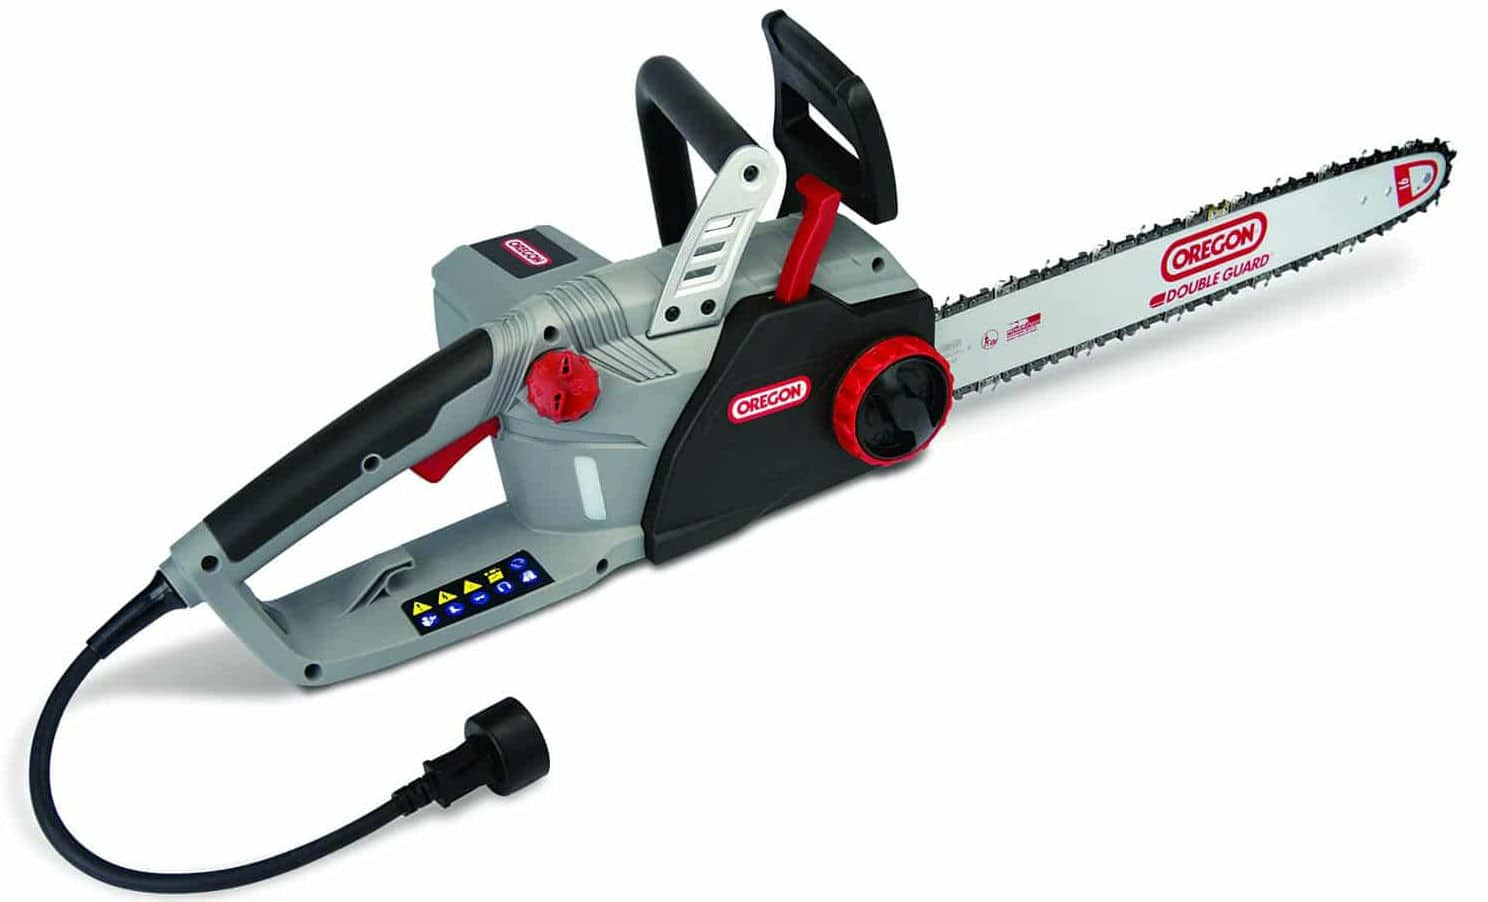 Oregon CS1500 Self Sharpening Electric Chain Saw